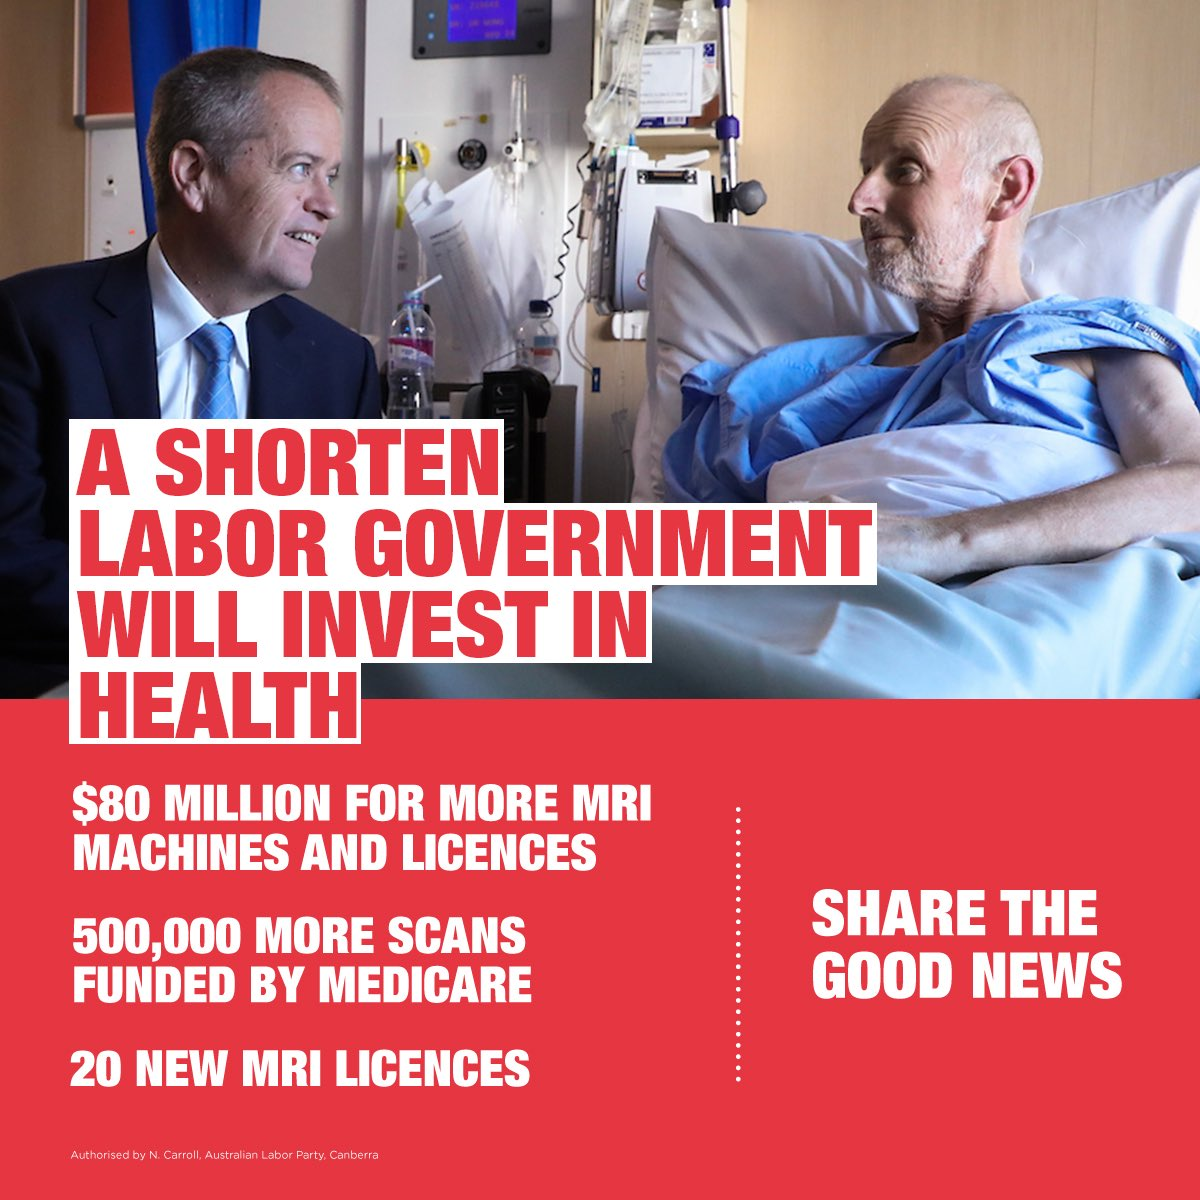 Labor believes the health of your family is more important than giving another tax cut to the top end of town. We'll fund 20 new MRI licences - meaning 500,000 more scans funded by Medicare. And we'll pay for it by stopping Turnbull's $17 billion handout to the banks.